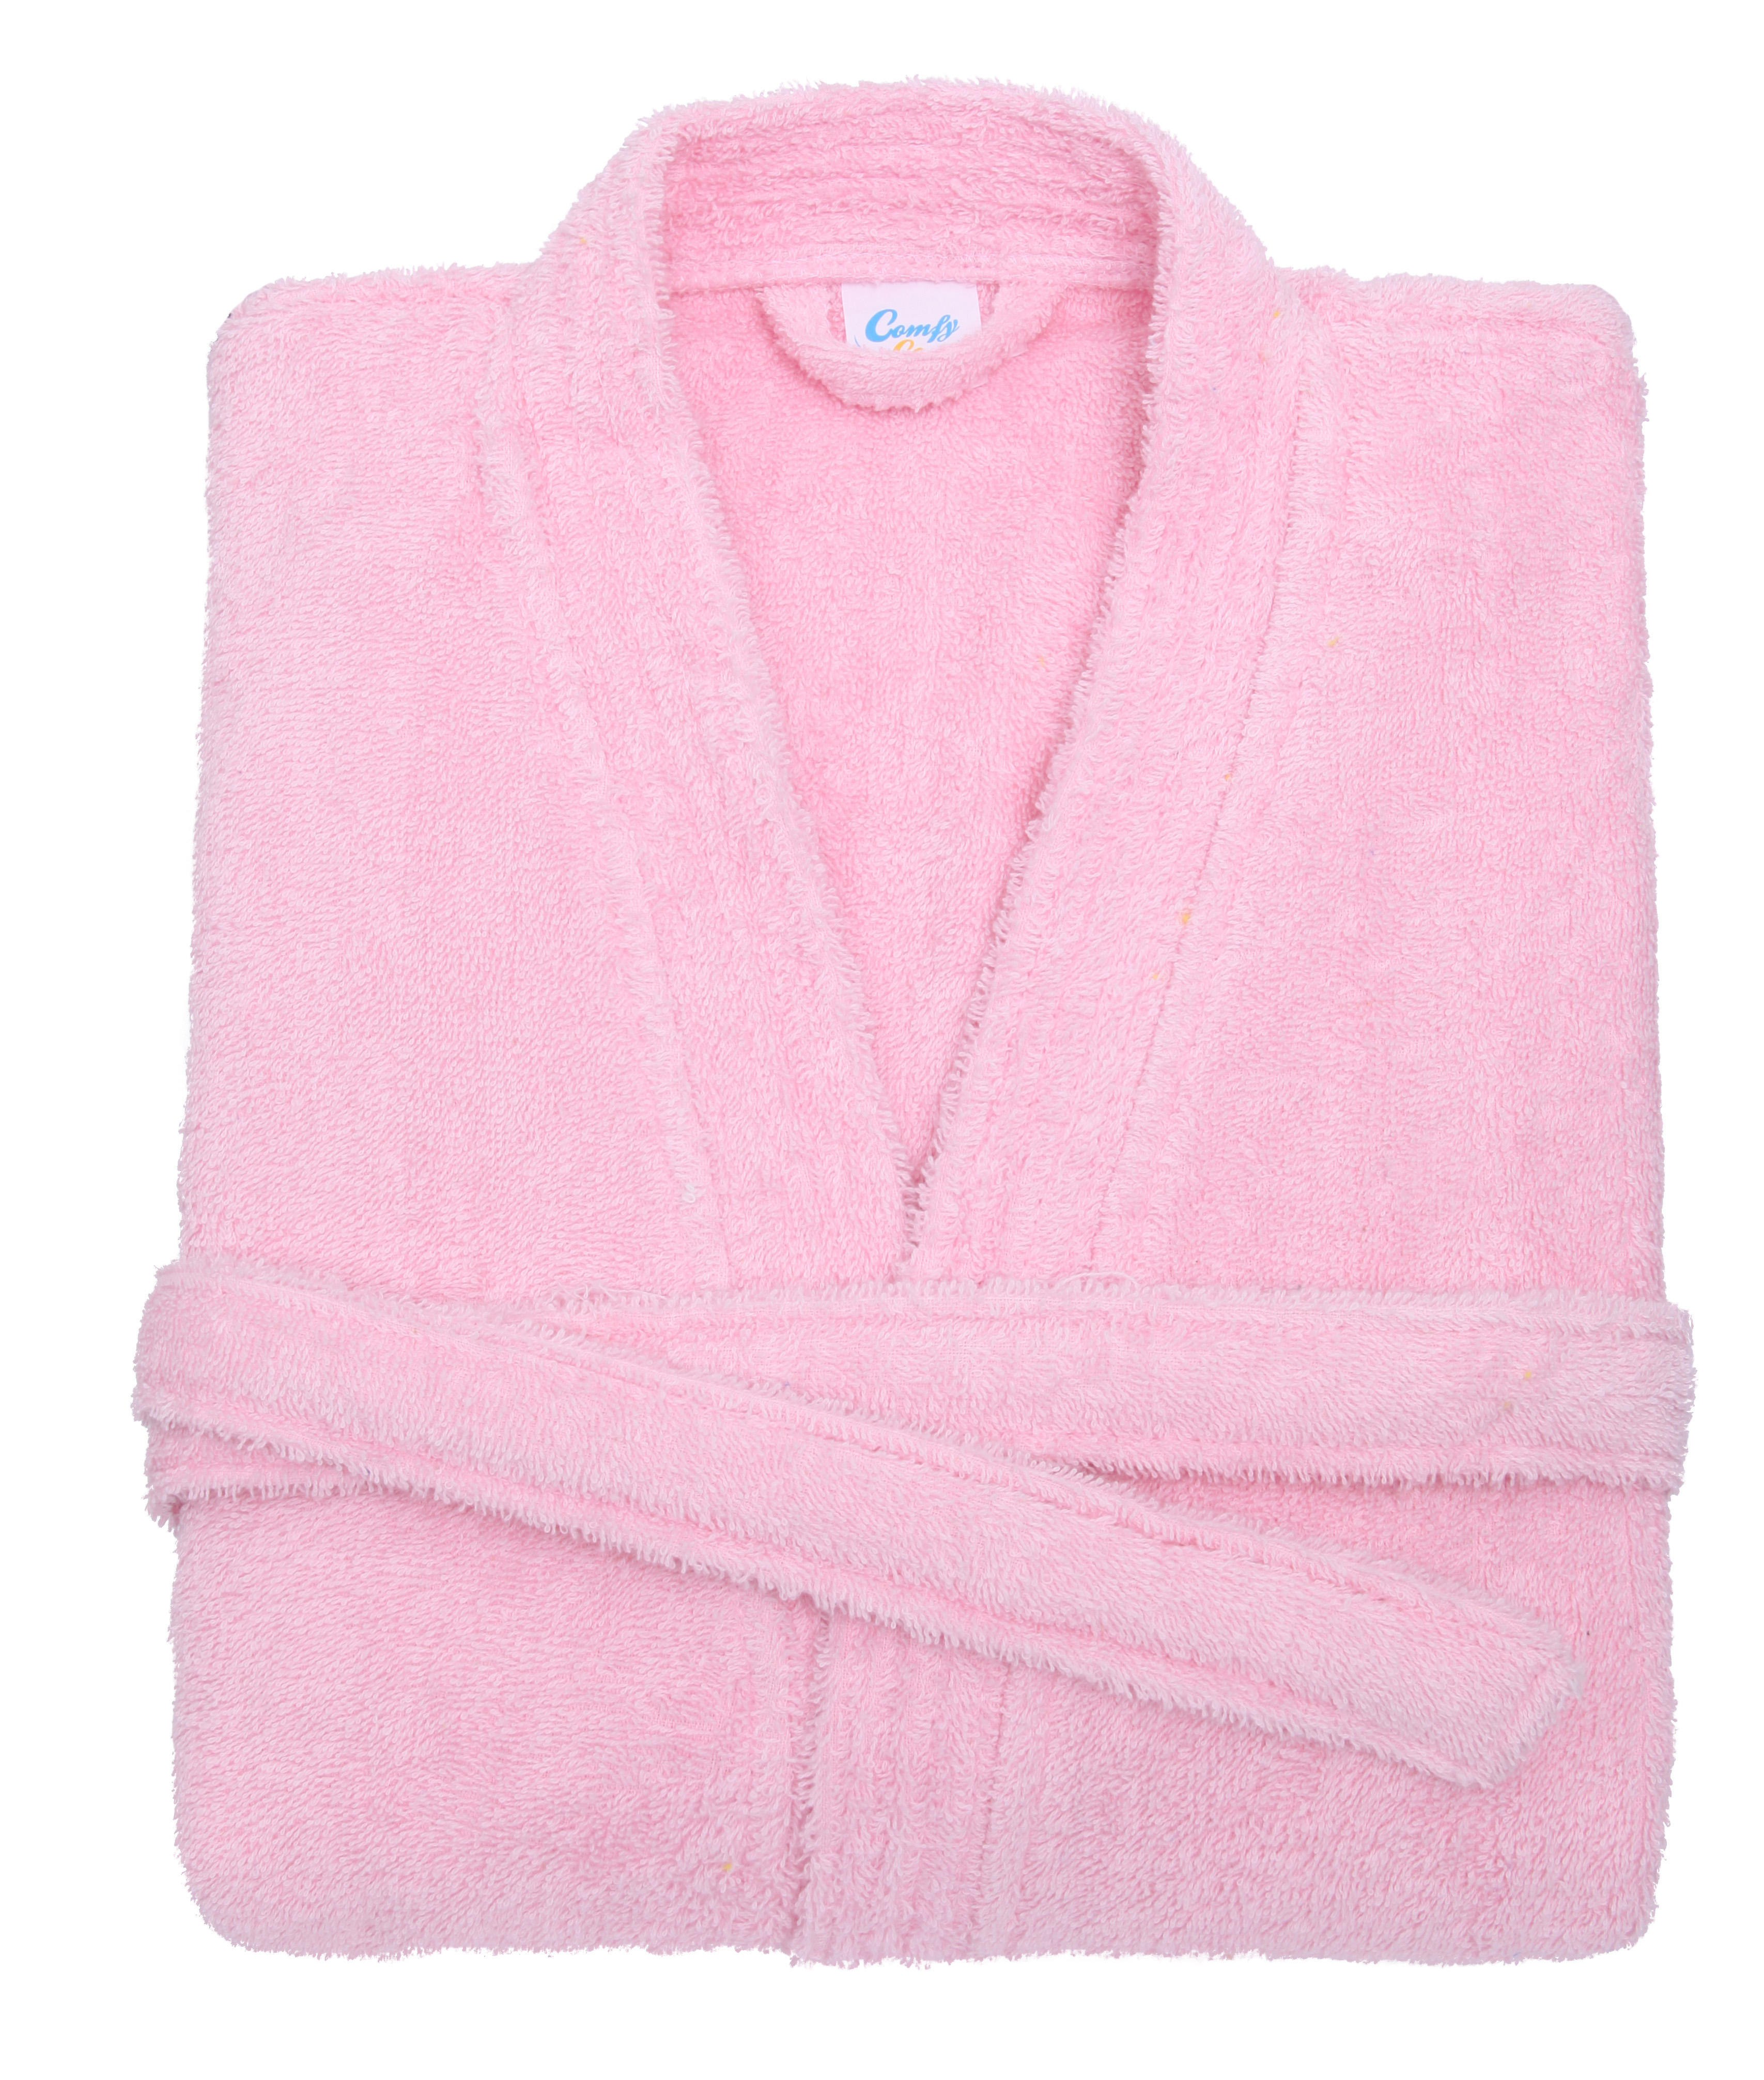 baby pink cotton towelling bath robe